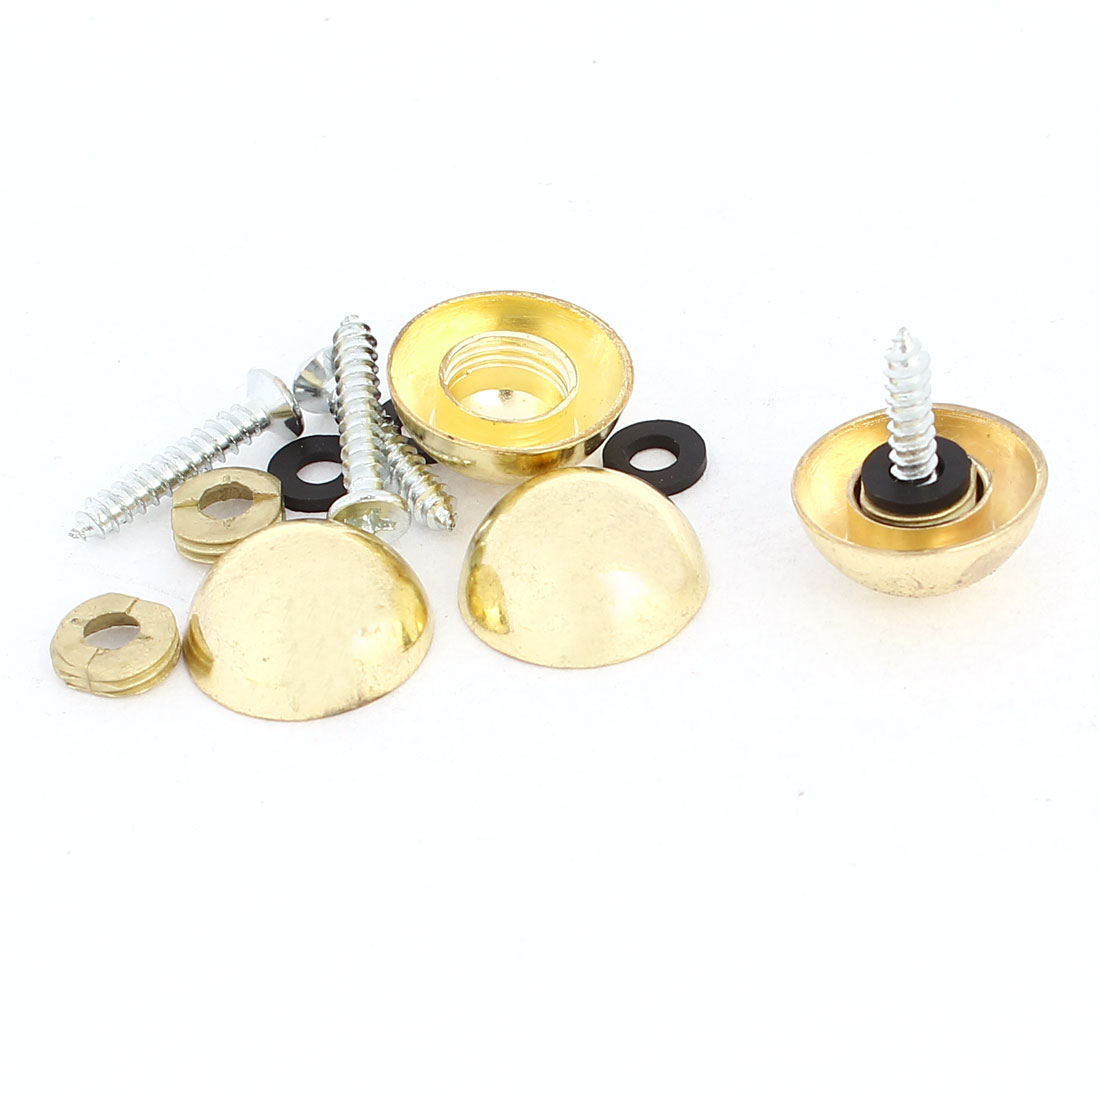 4 Pcs 18mm Dia 10mm Height Zinc Alloy Dome Glass Mirror Screw Cap Gold Tone